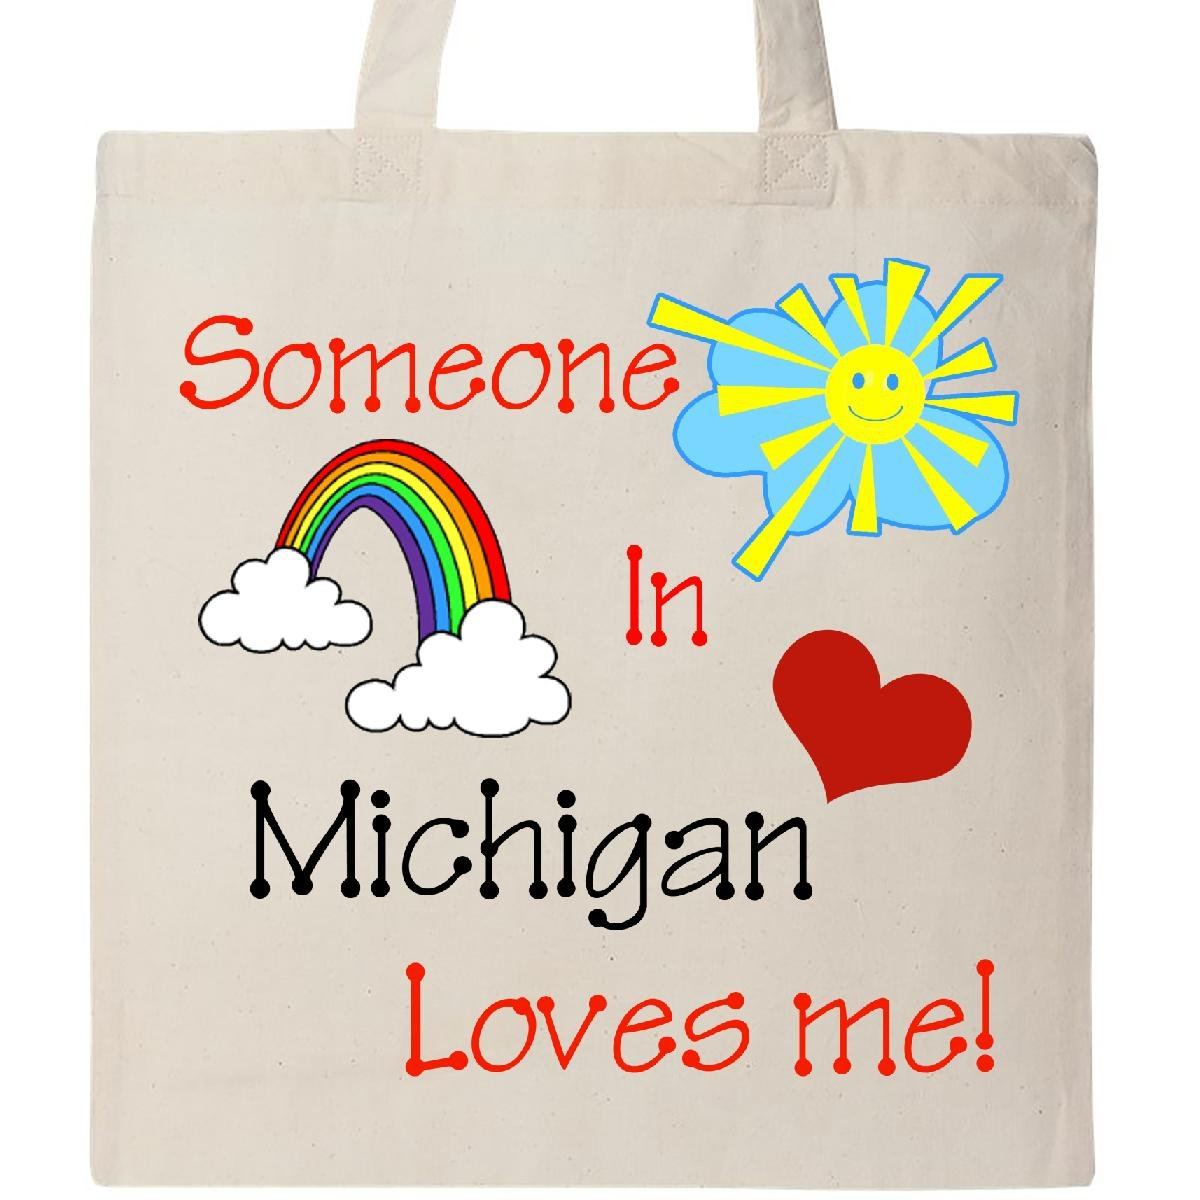 Inktastic Someone in Michigan loves me! Tote Bag Natural by inktastic (Image #1)